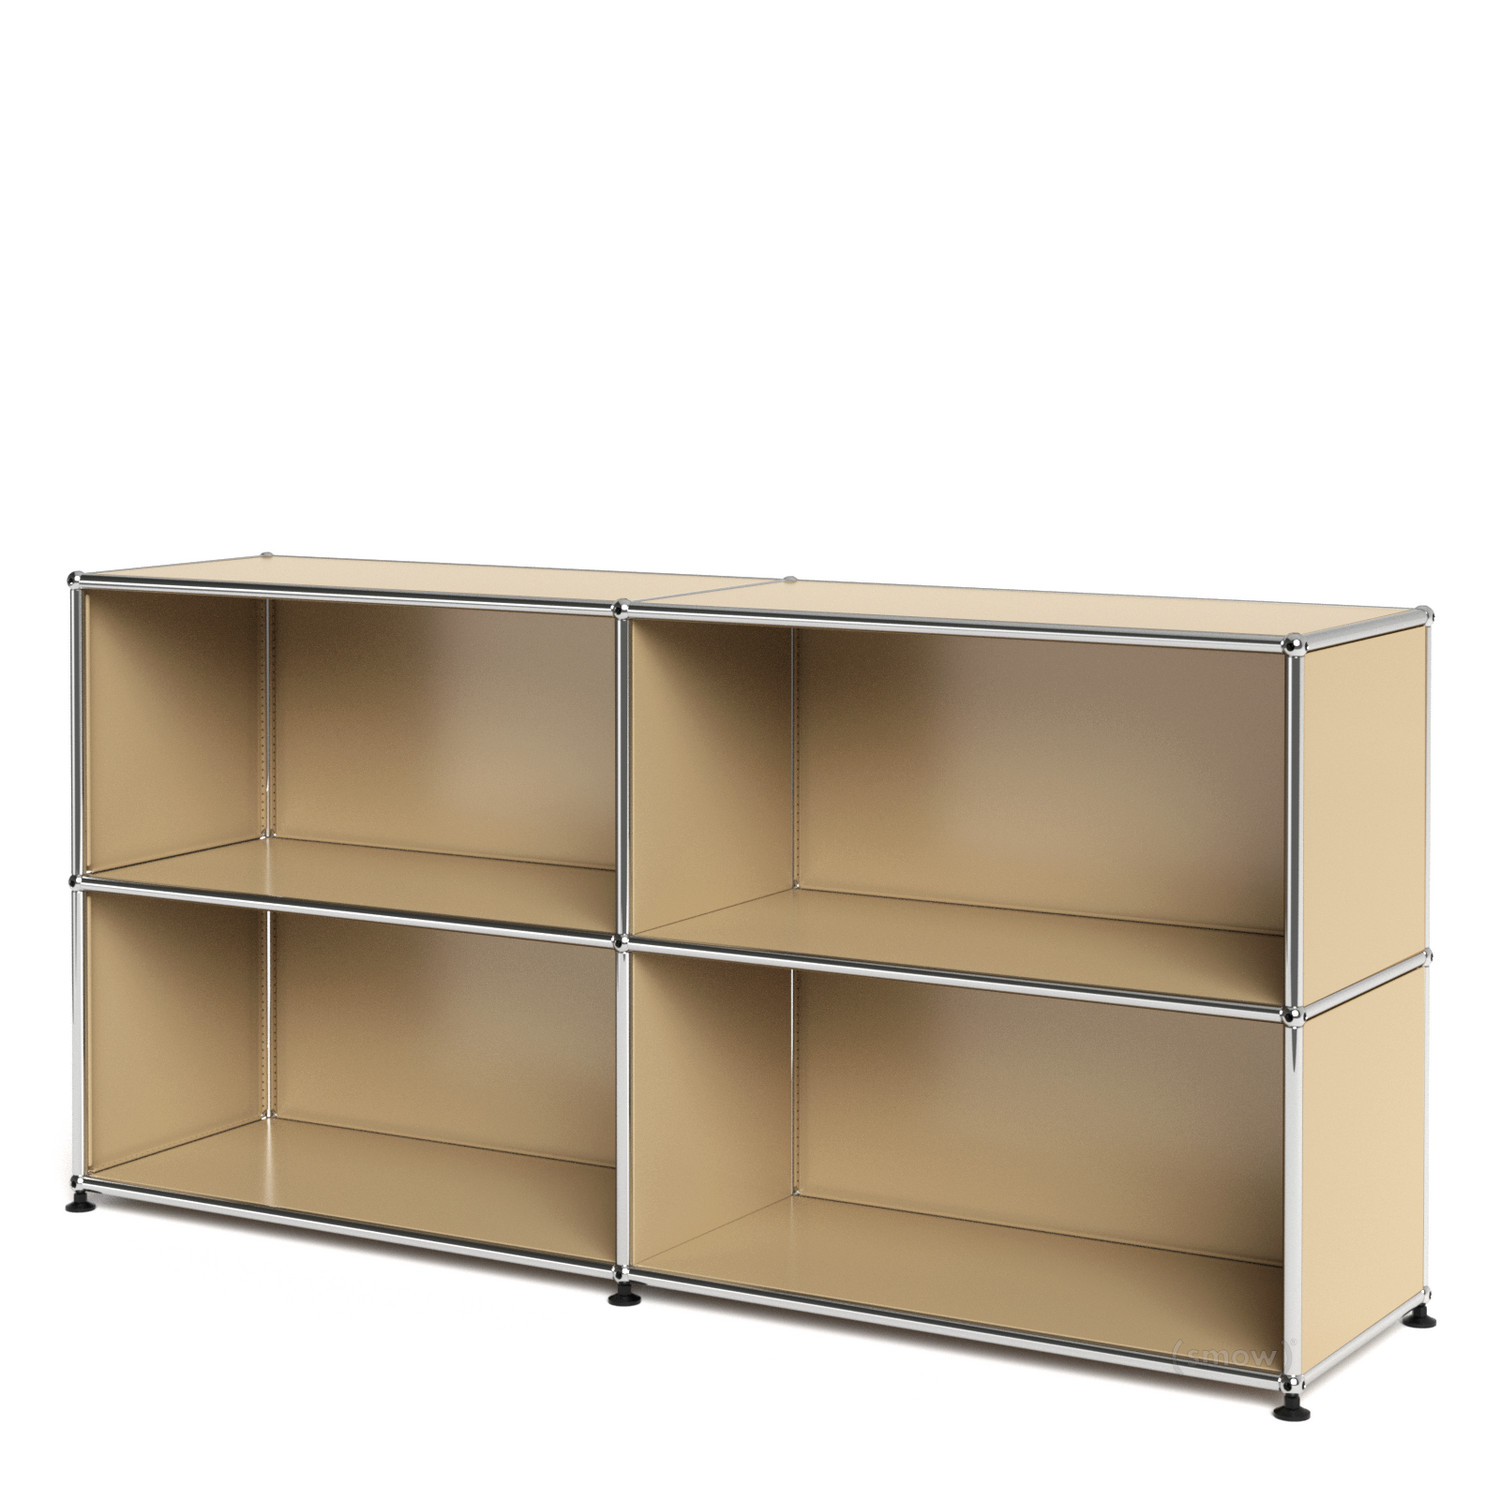 usm haller sideboard l customisable usm beige open open by fritz haller paul sch rer. Black Bedroom Furniture Sets. Home Design Ideas